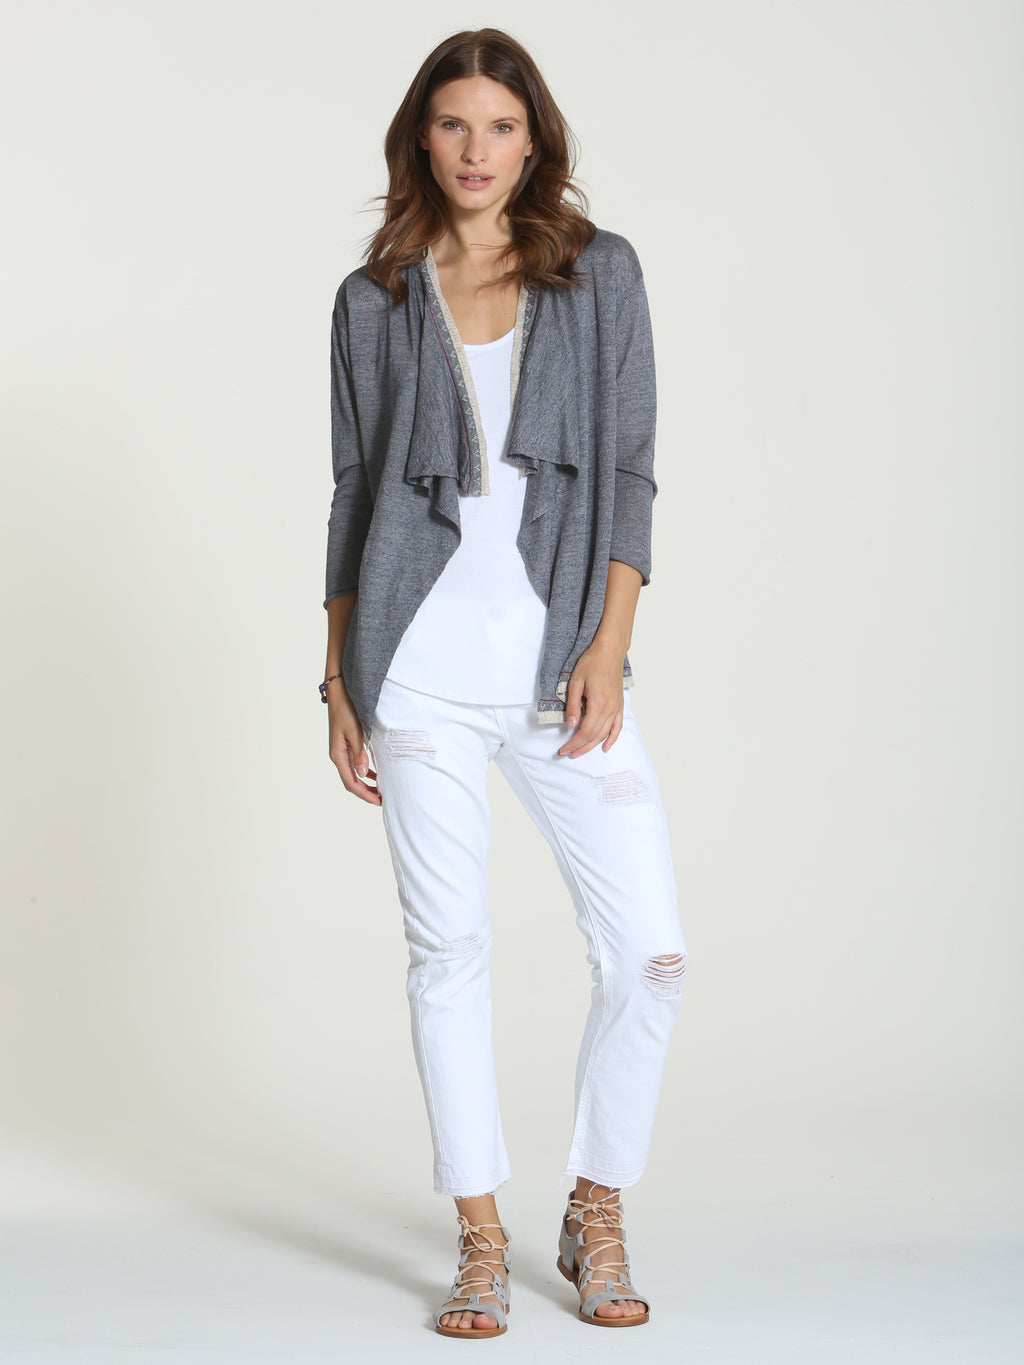 Breeze Cardigan - Slate